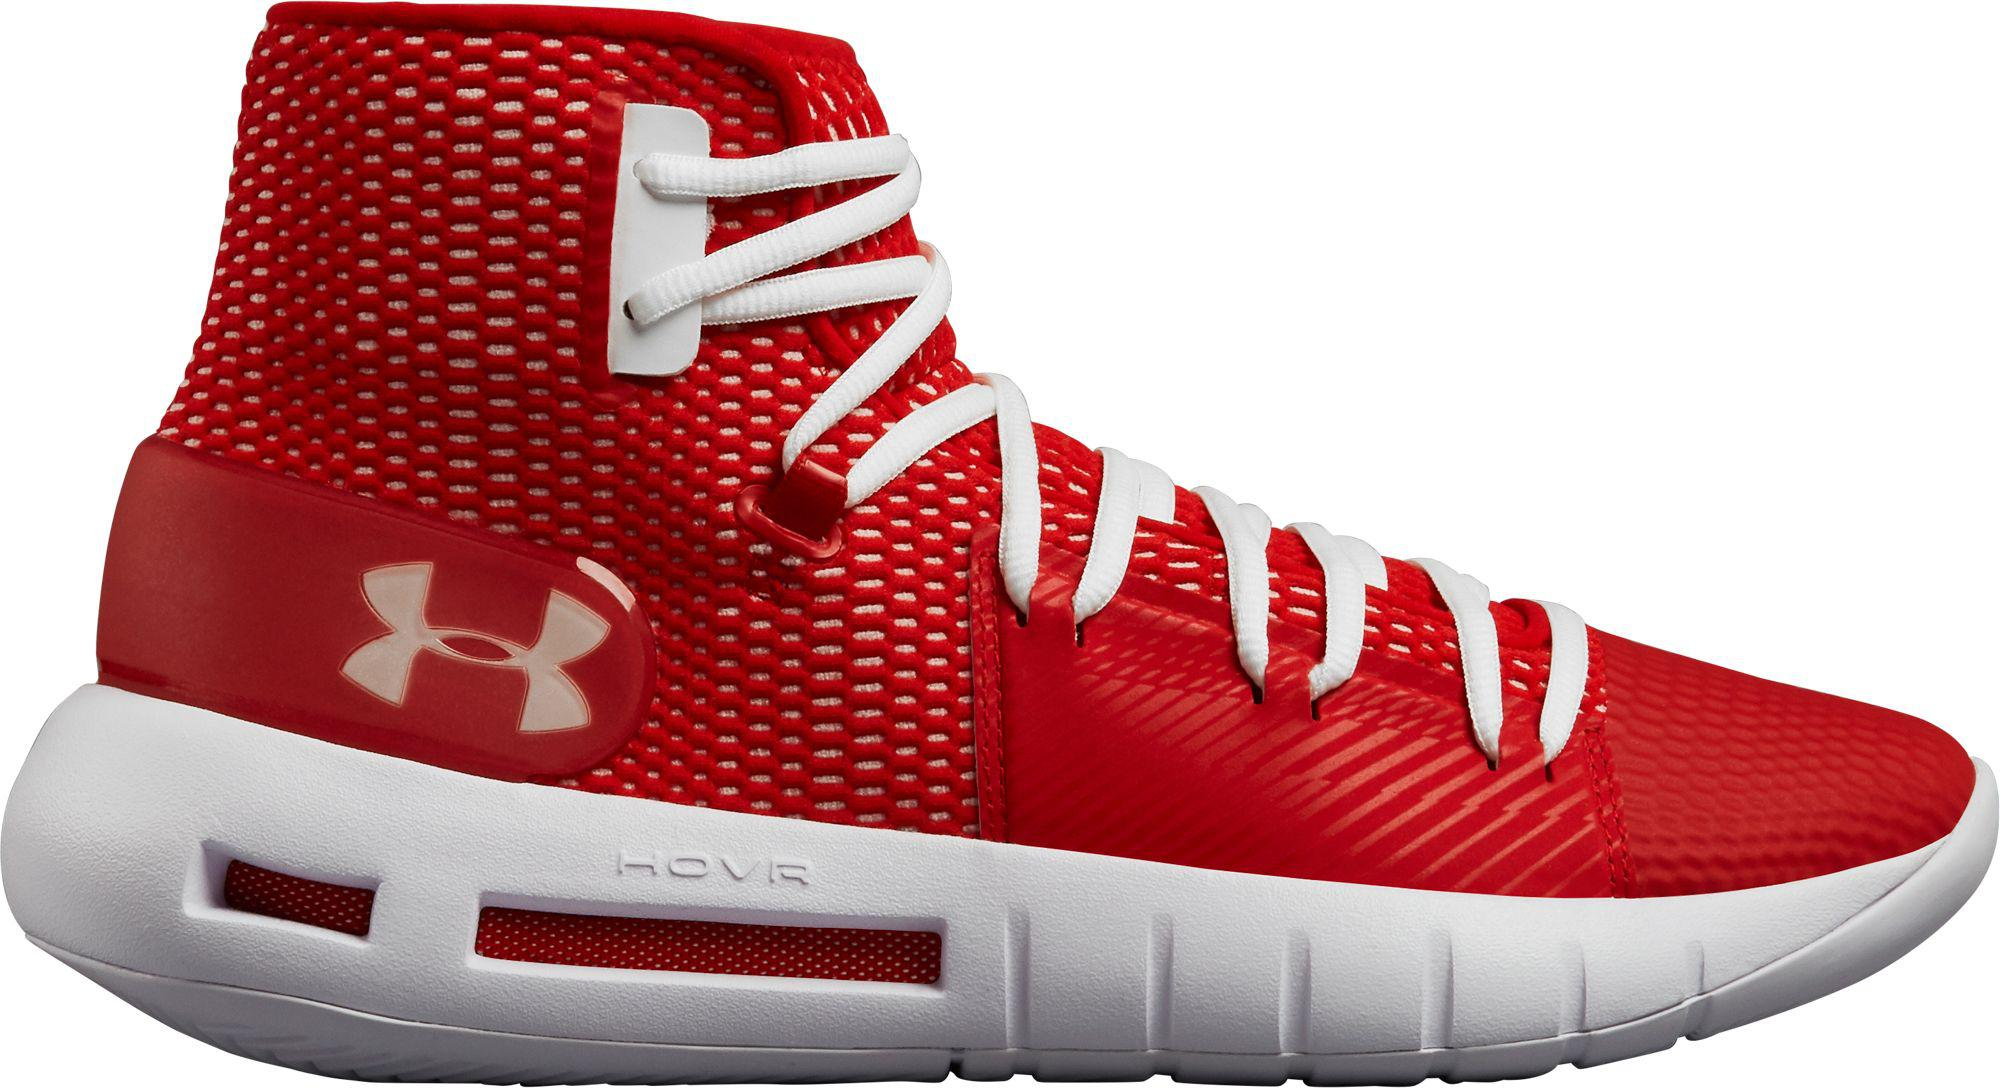 b072bf580b4 Lyst Under Armour Hovr Havoc Basketball Shoes In Red For Men